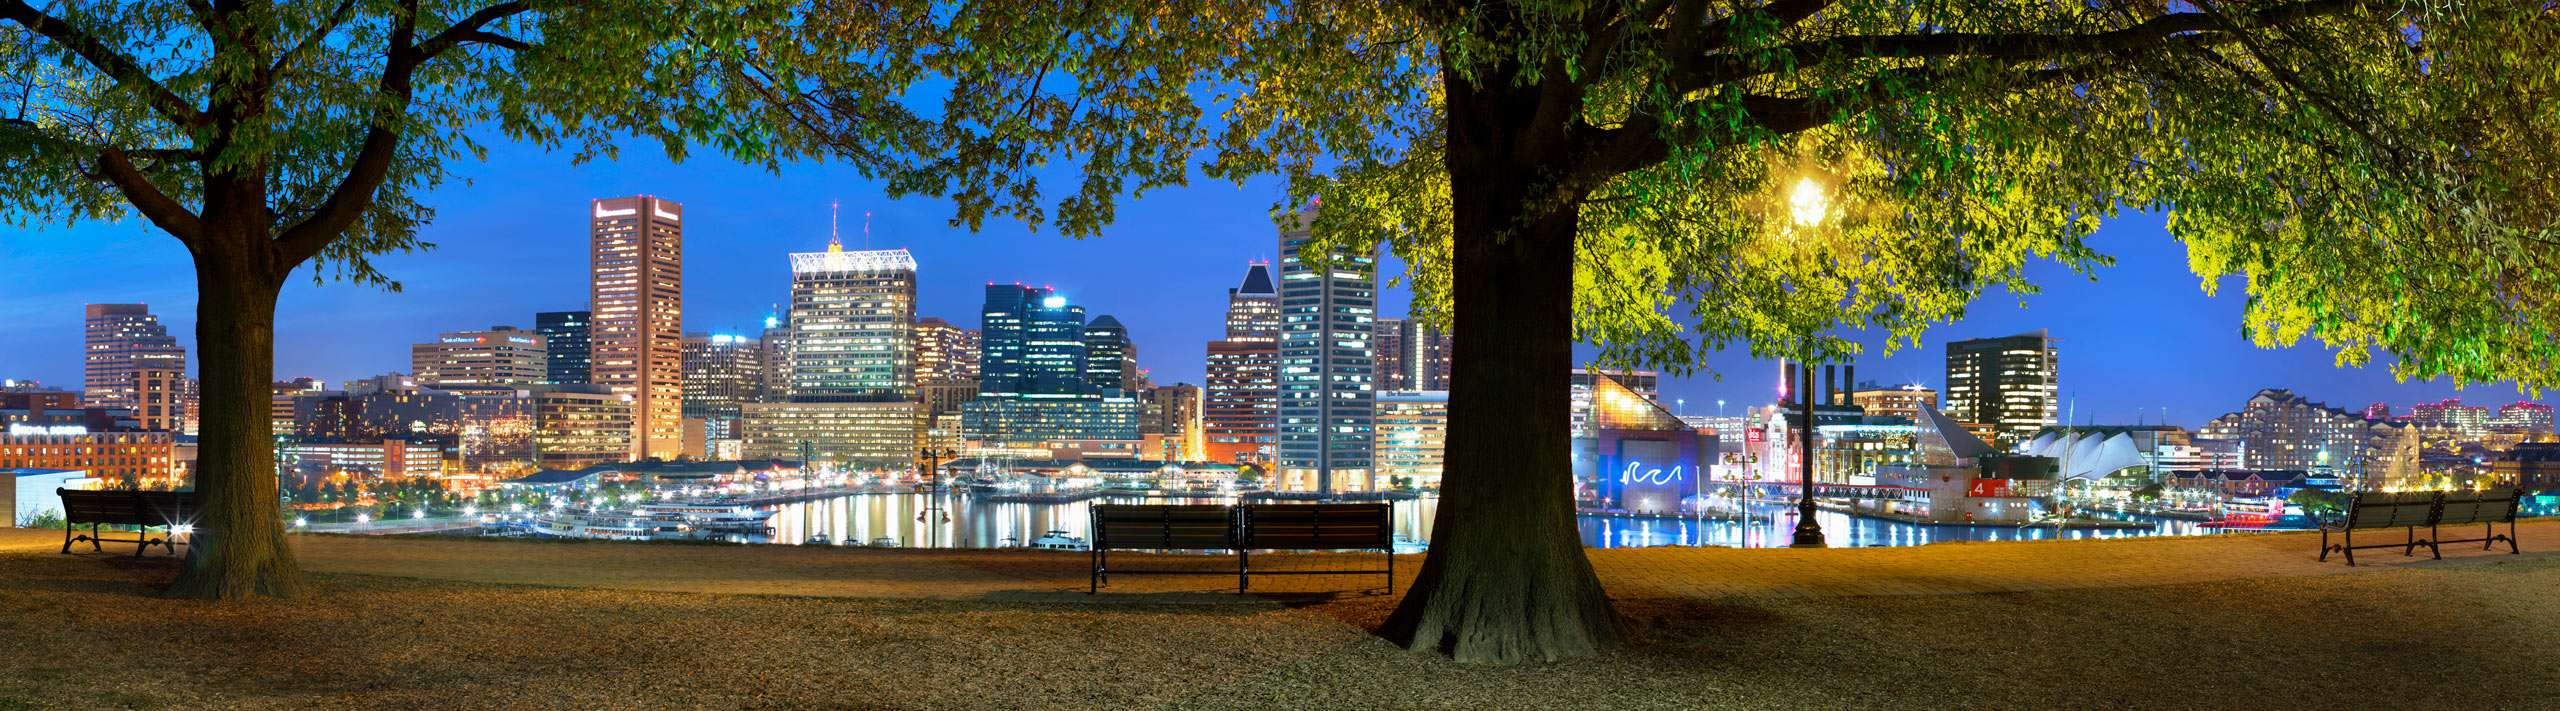 Federal Hill Park Benches and View of Downtown Baltimore